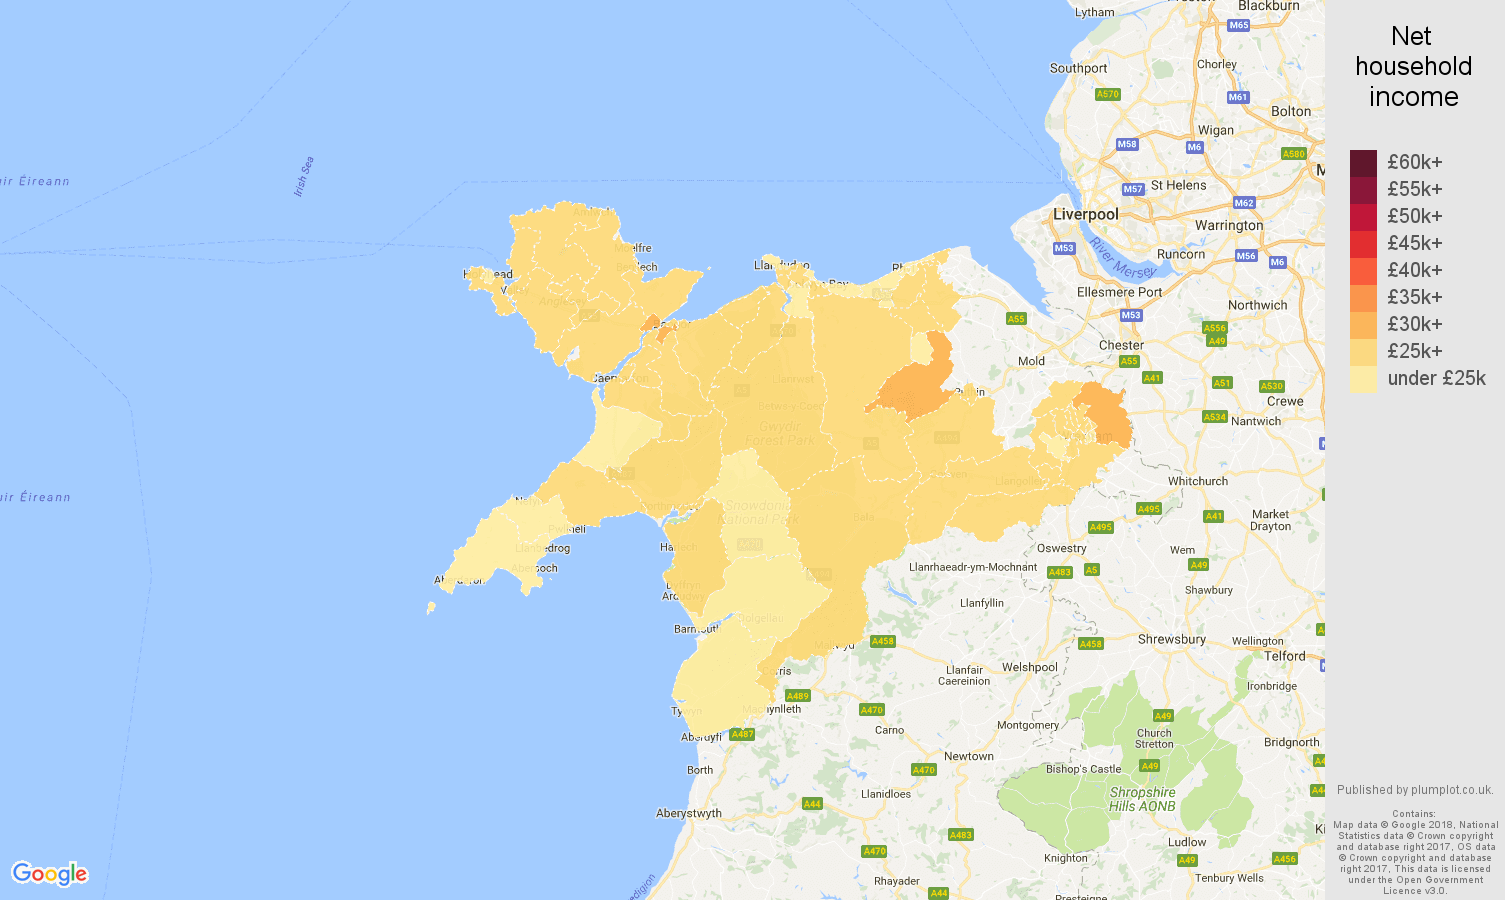 Llandudno net household income map